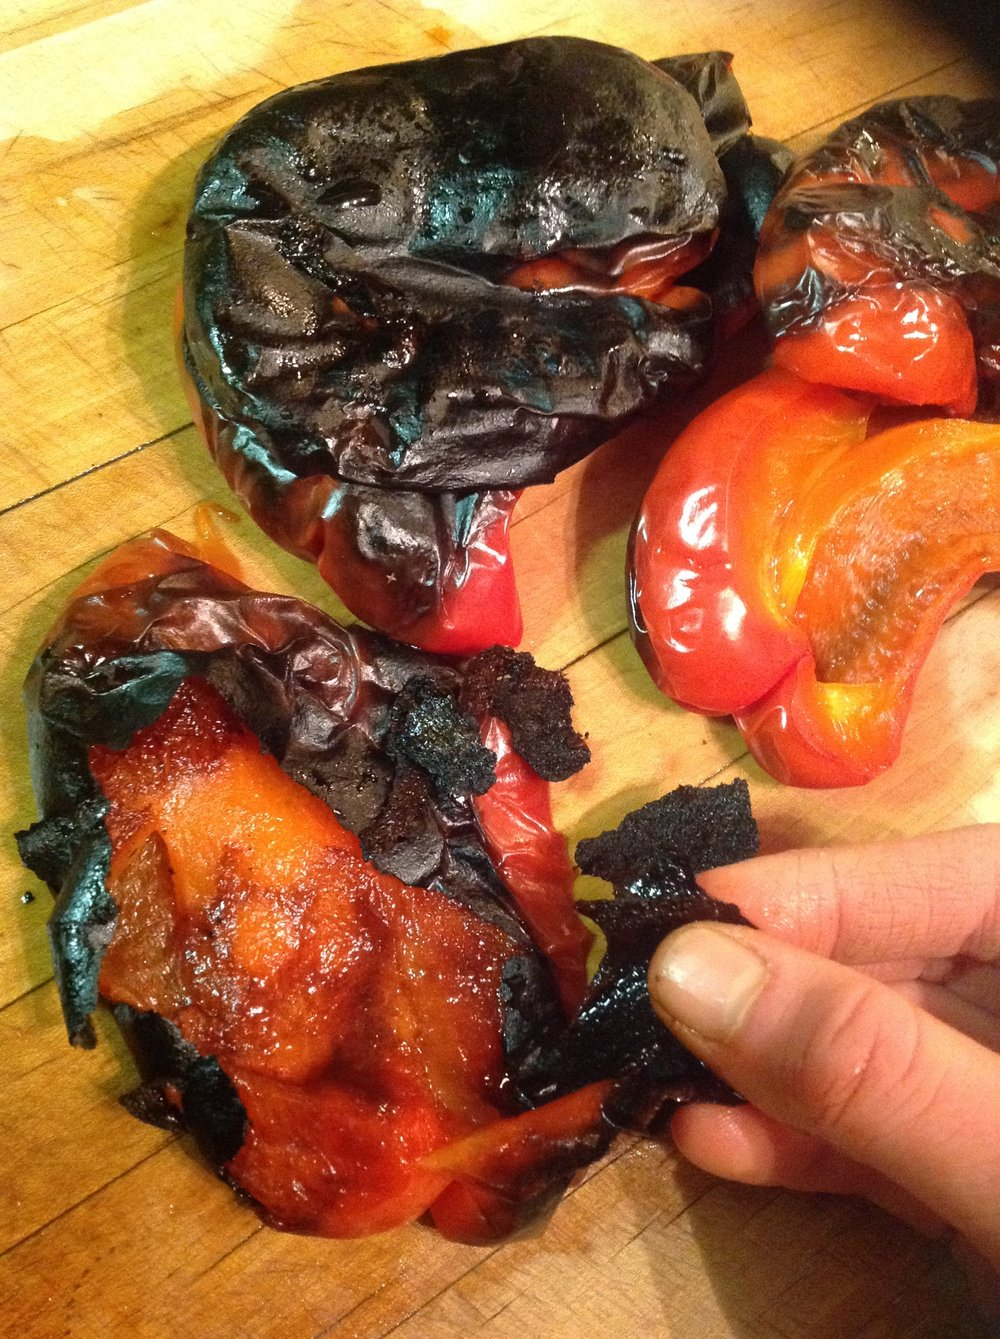 Chef's Tip - After Steaming, The Charred Skins of the Roasted Peppers Easily Peels Off for Healthy, Delicious Flavor